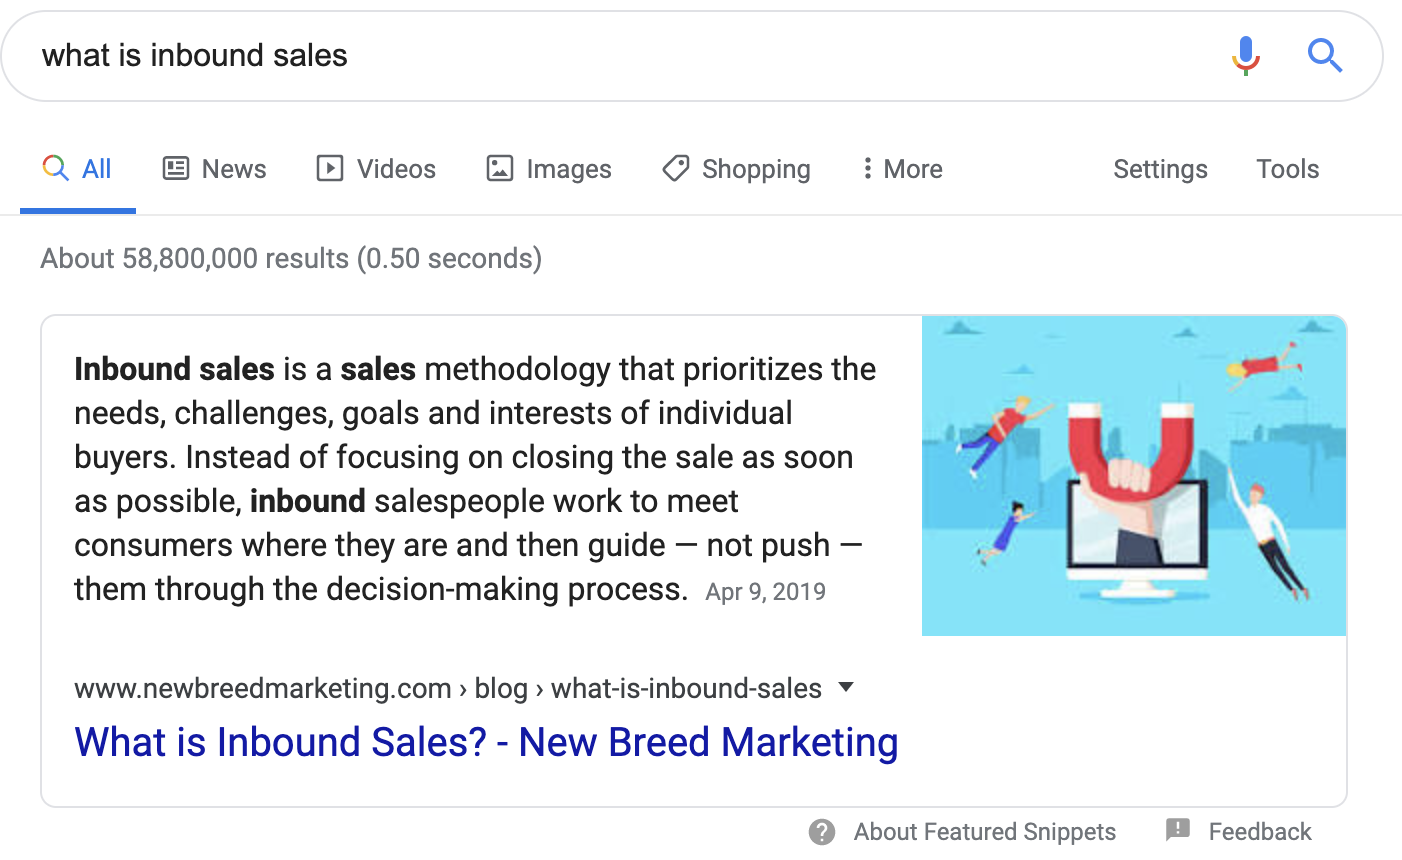 what is inbound sales